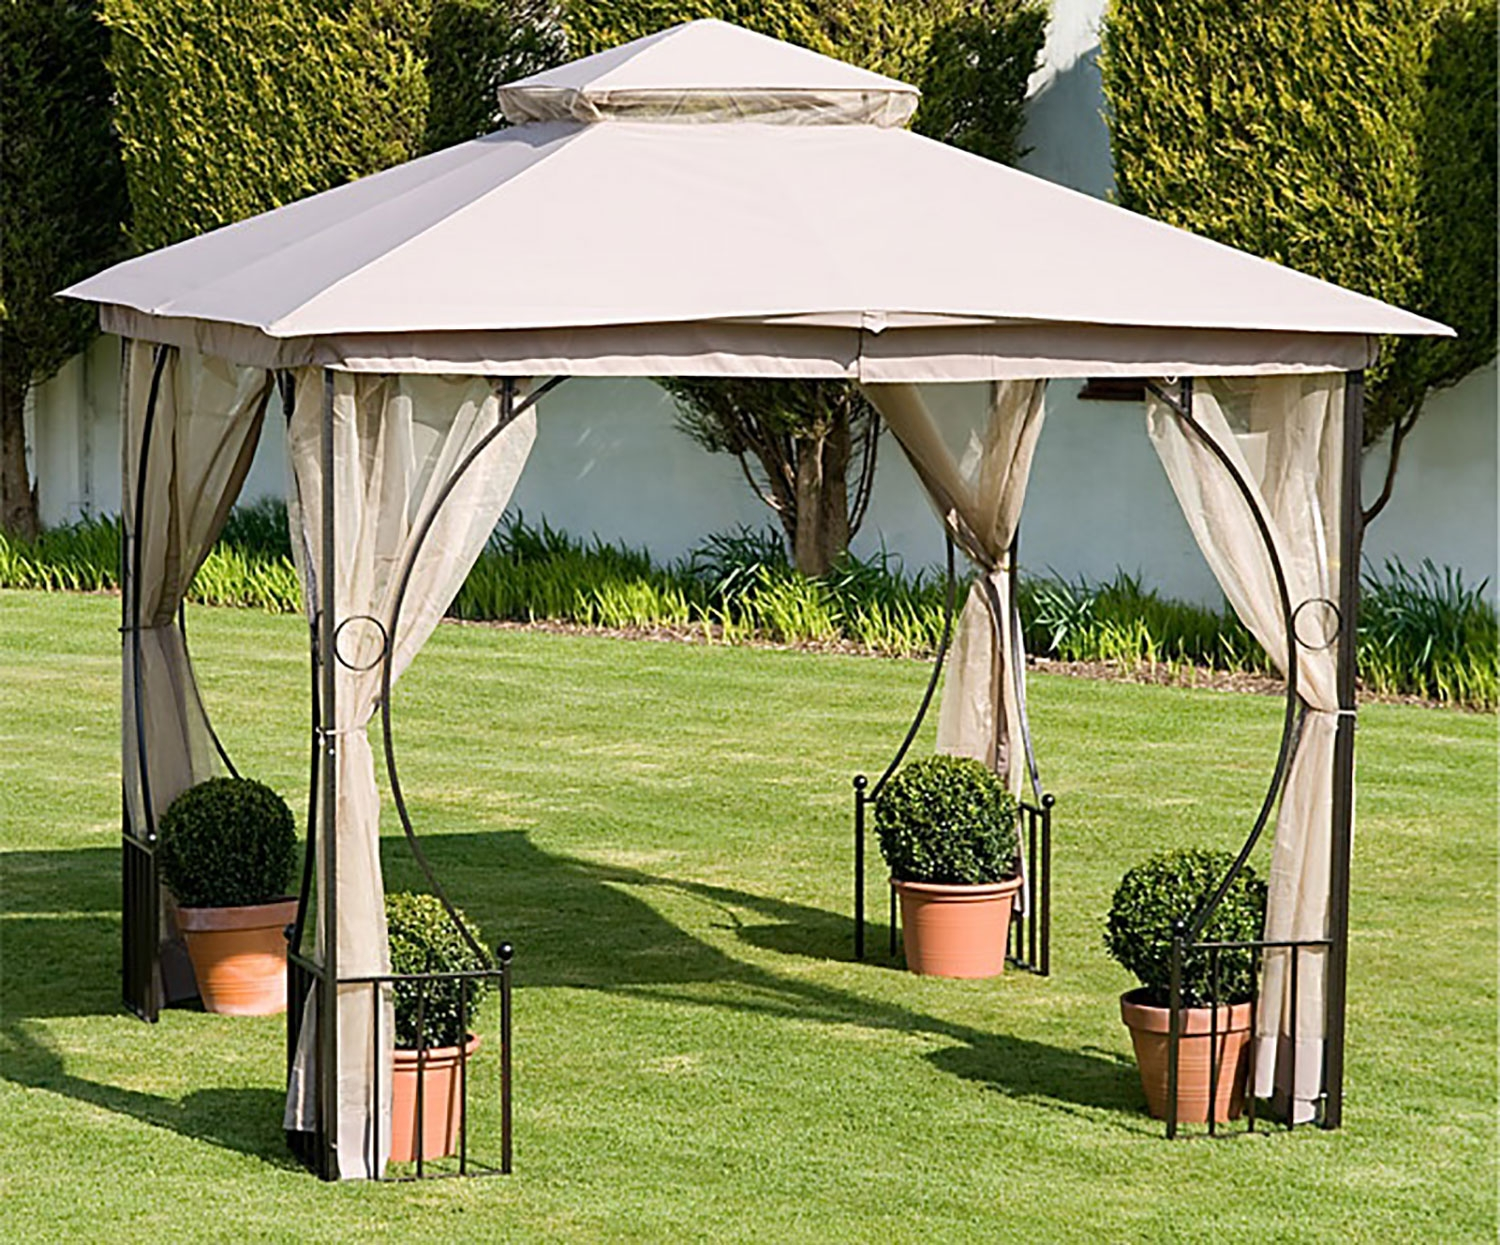 http://www.gardensandhomesdirect.co.uk/media/catalog/product/g/h/gh00818.jpg